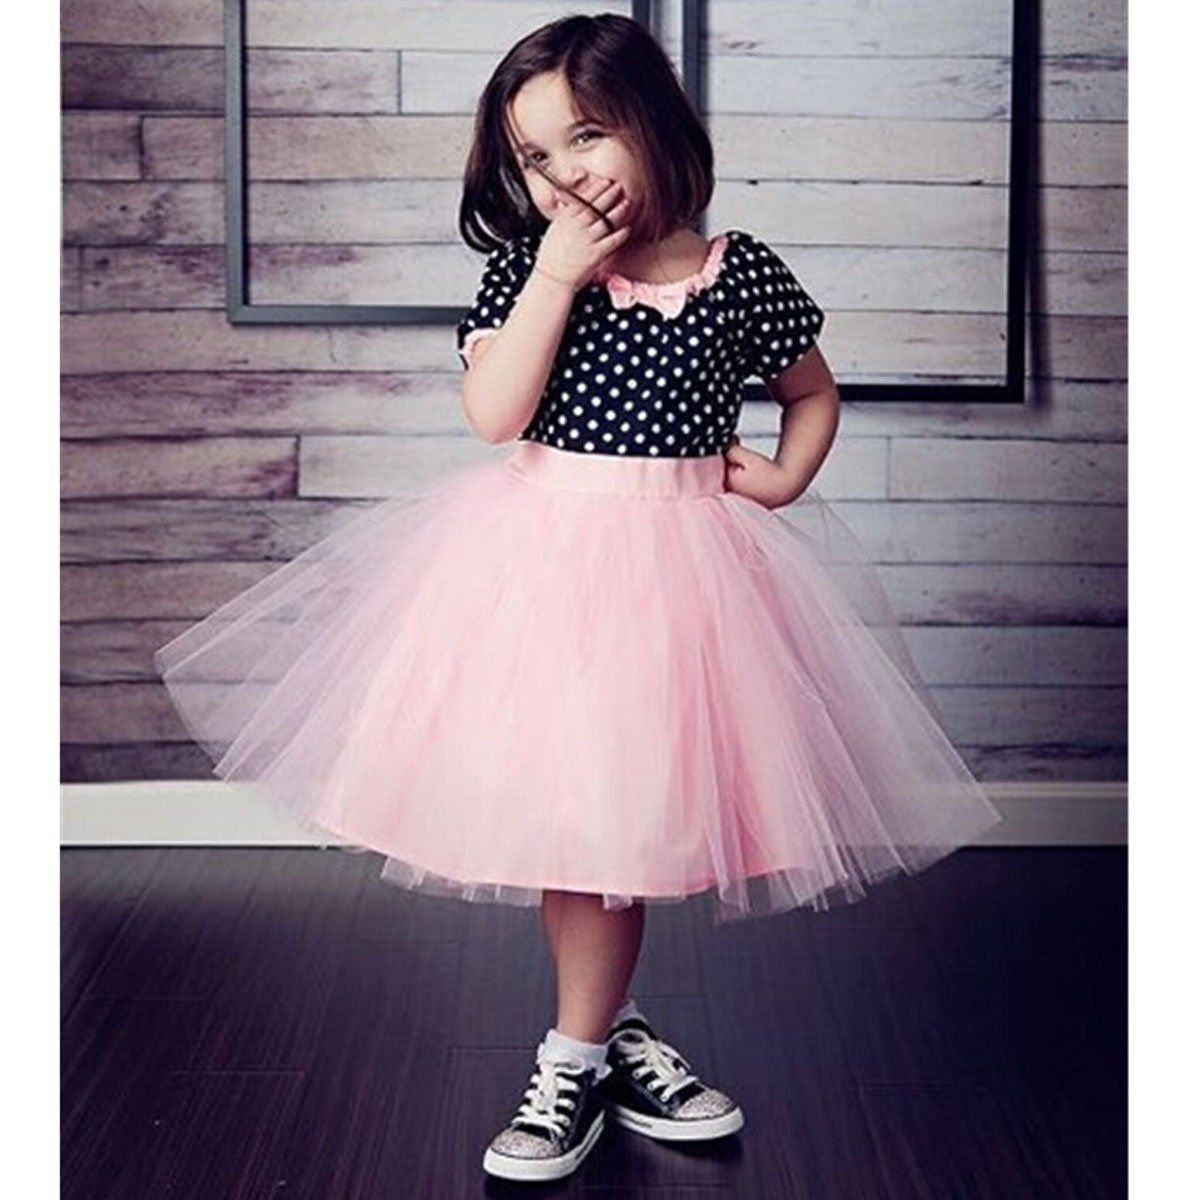 2017 Top Fashion Direct Selling knielange Korte Dot Kant Meisjes Kids - Kinderkleding